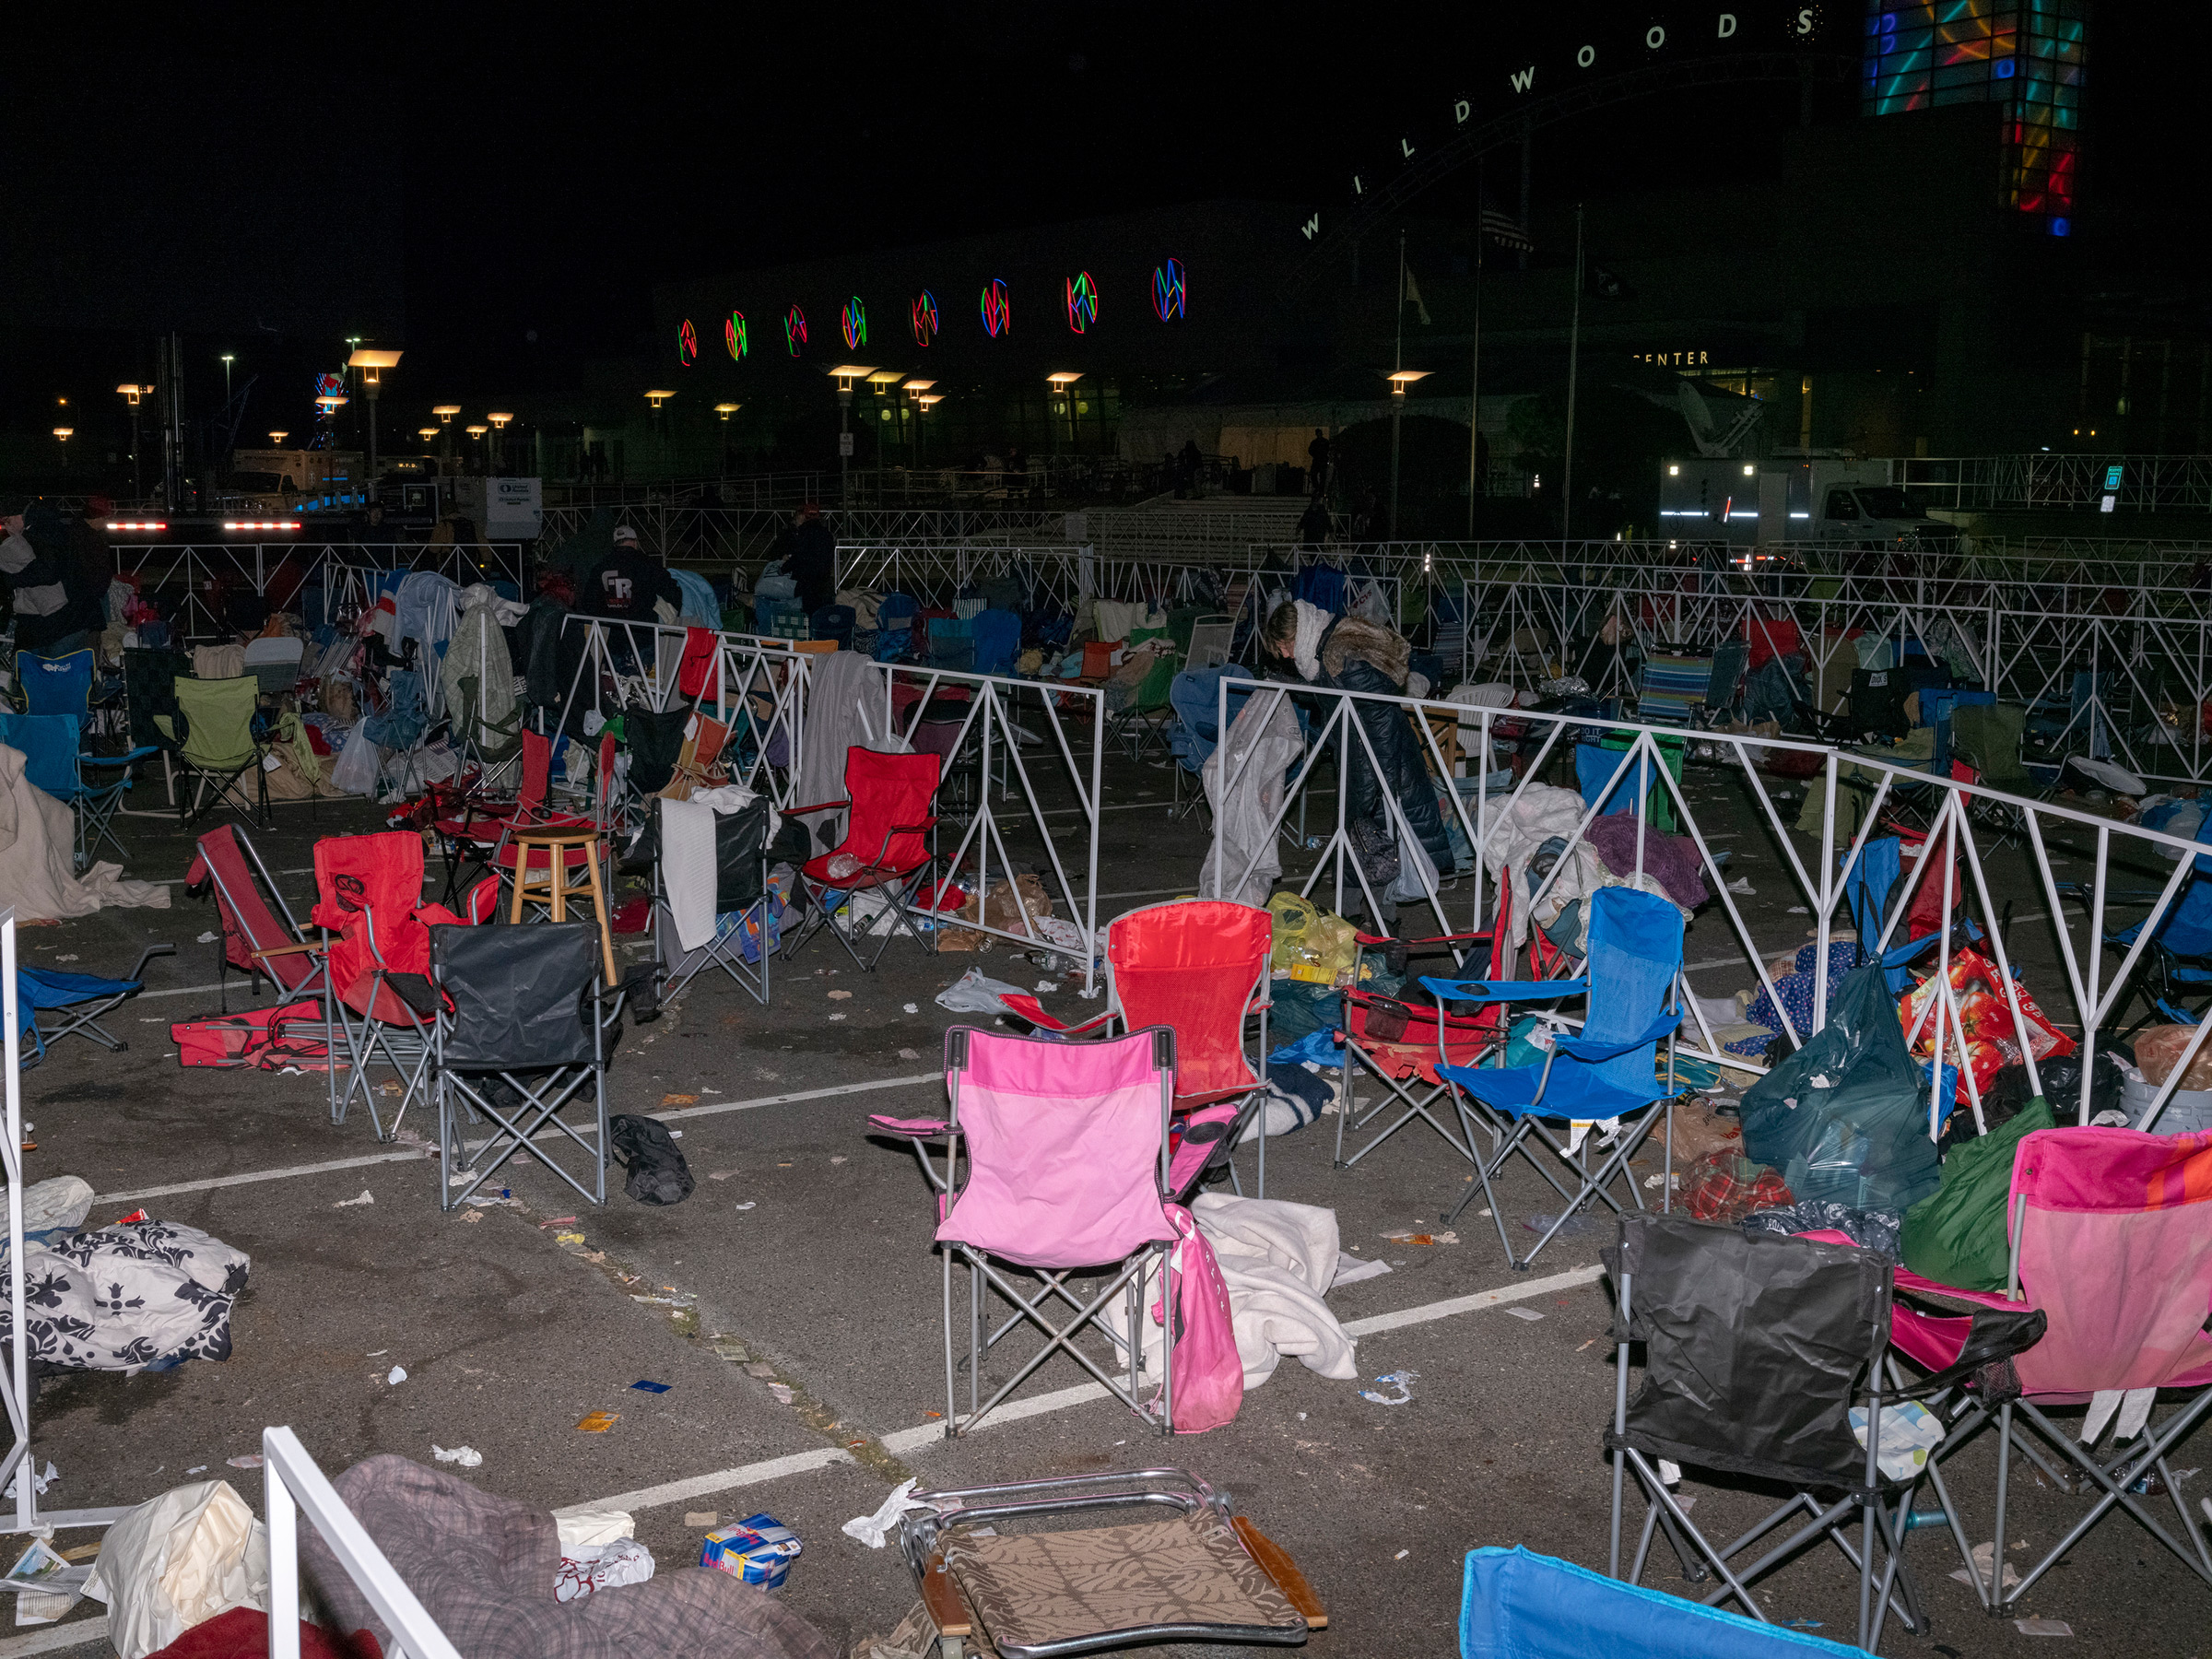 Wildwood, N.J., Jan. 28, 2020. After Trump's campaign events,  there is always a mountain of discarded chairs and coolers that aren't allowed into the rally. People wait in line for hours, even days, in order to get a prime place to watch the President speak.